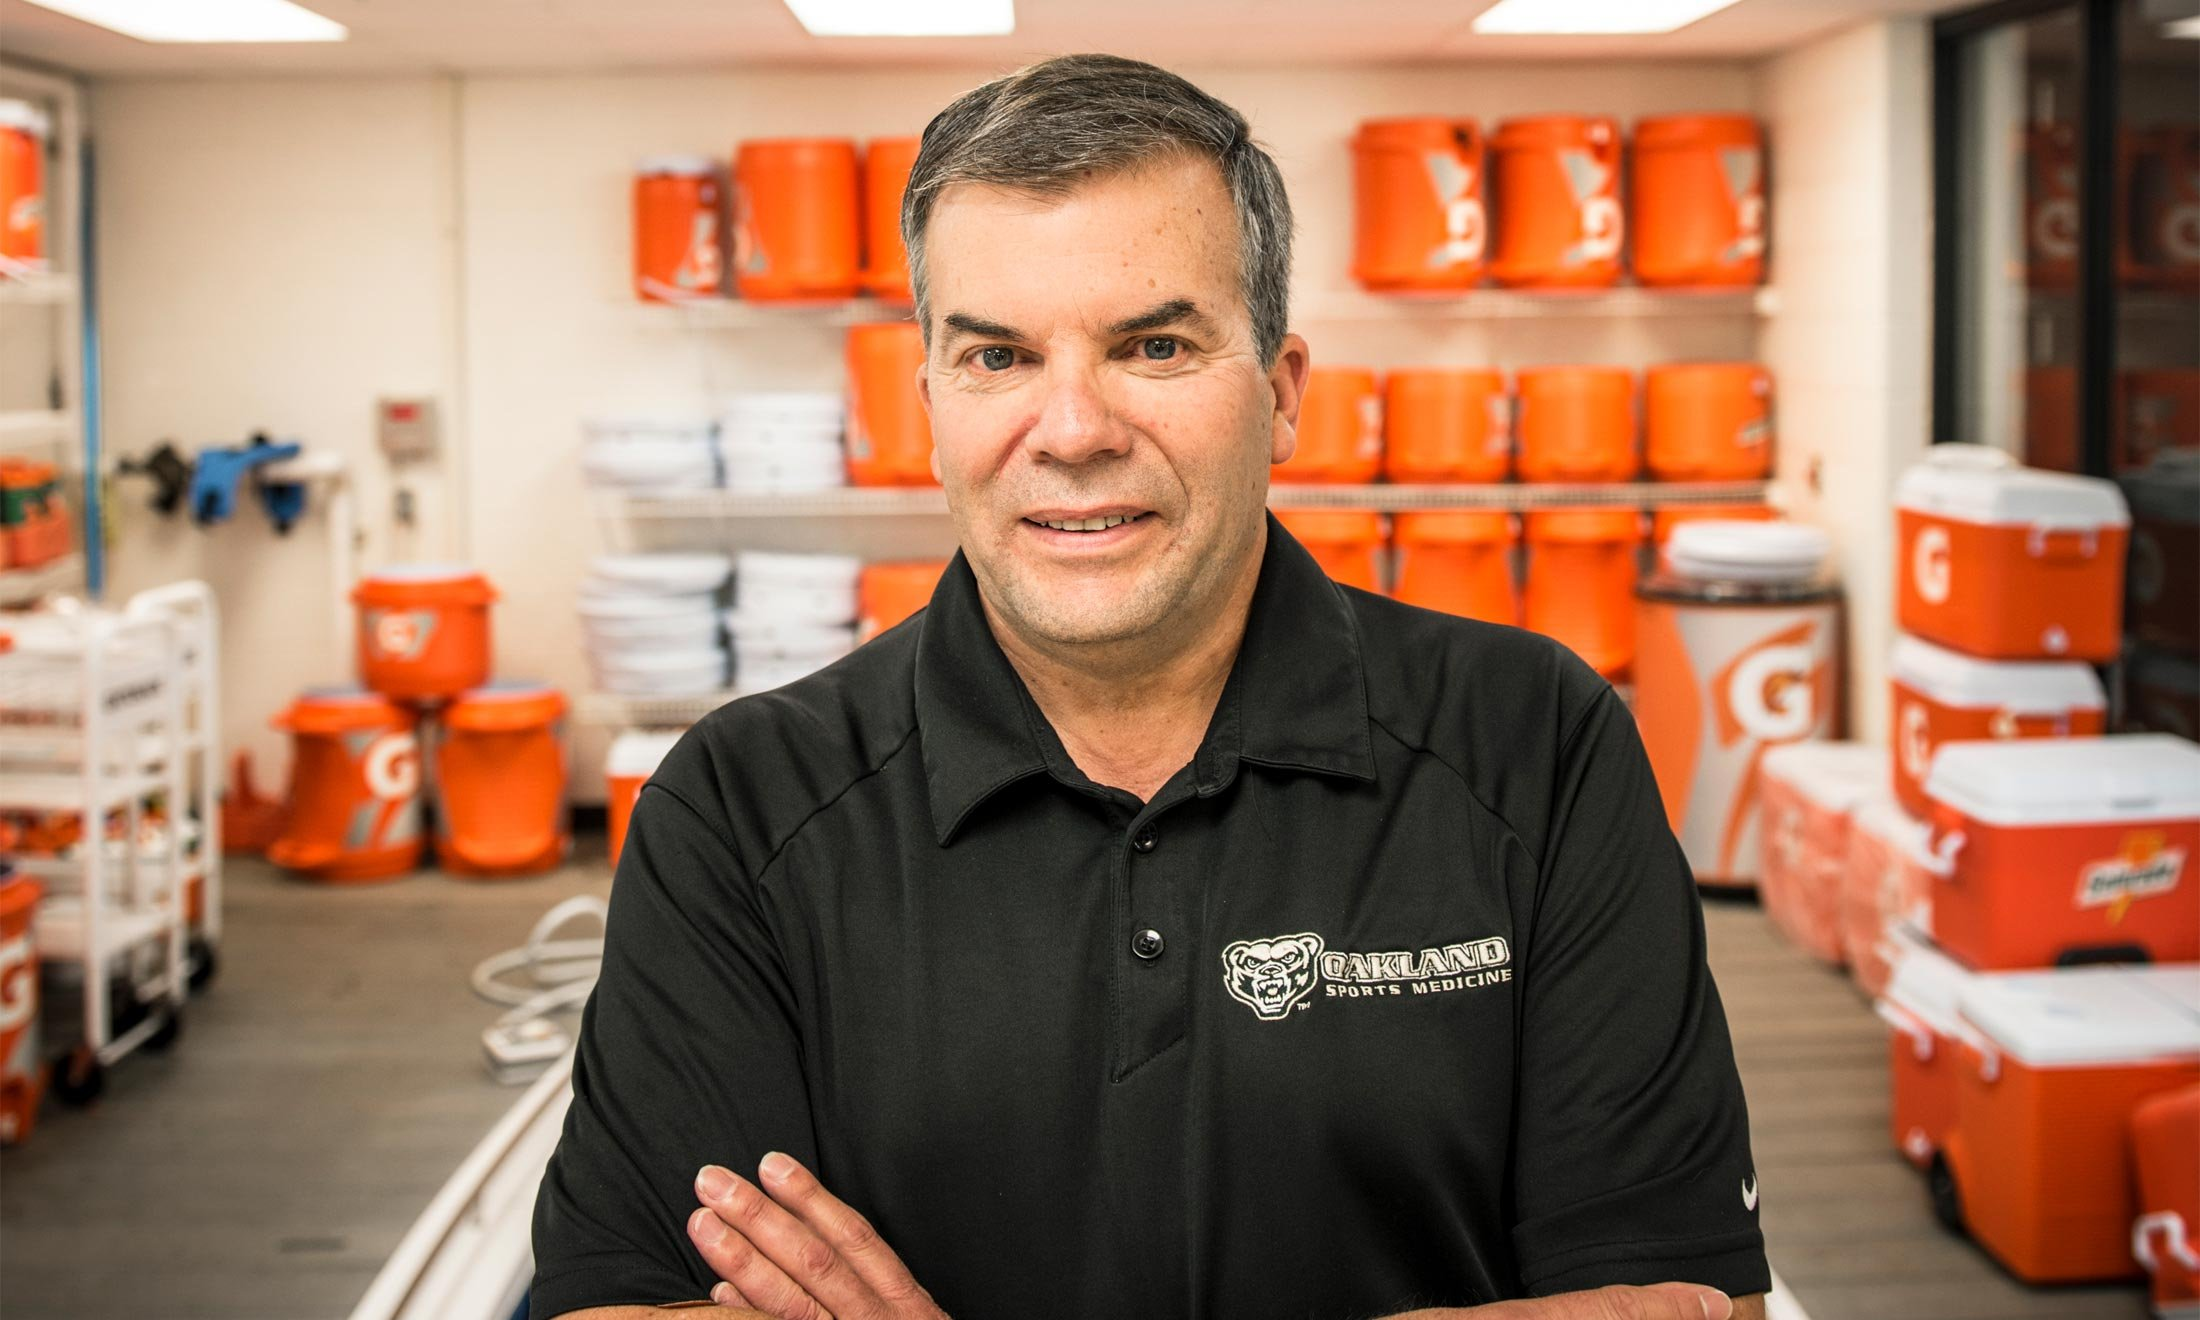 Oakland University athletics trainer Tom Ford stands in front of orange water coolers in a water training room